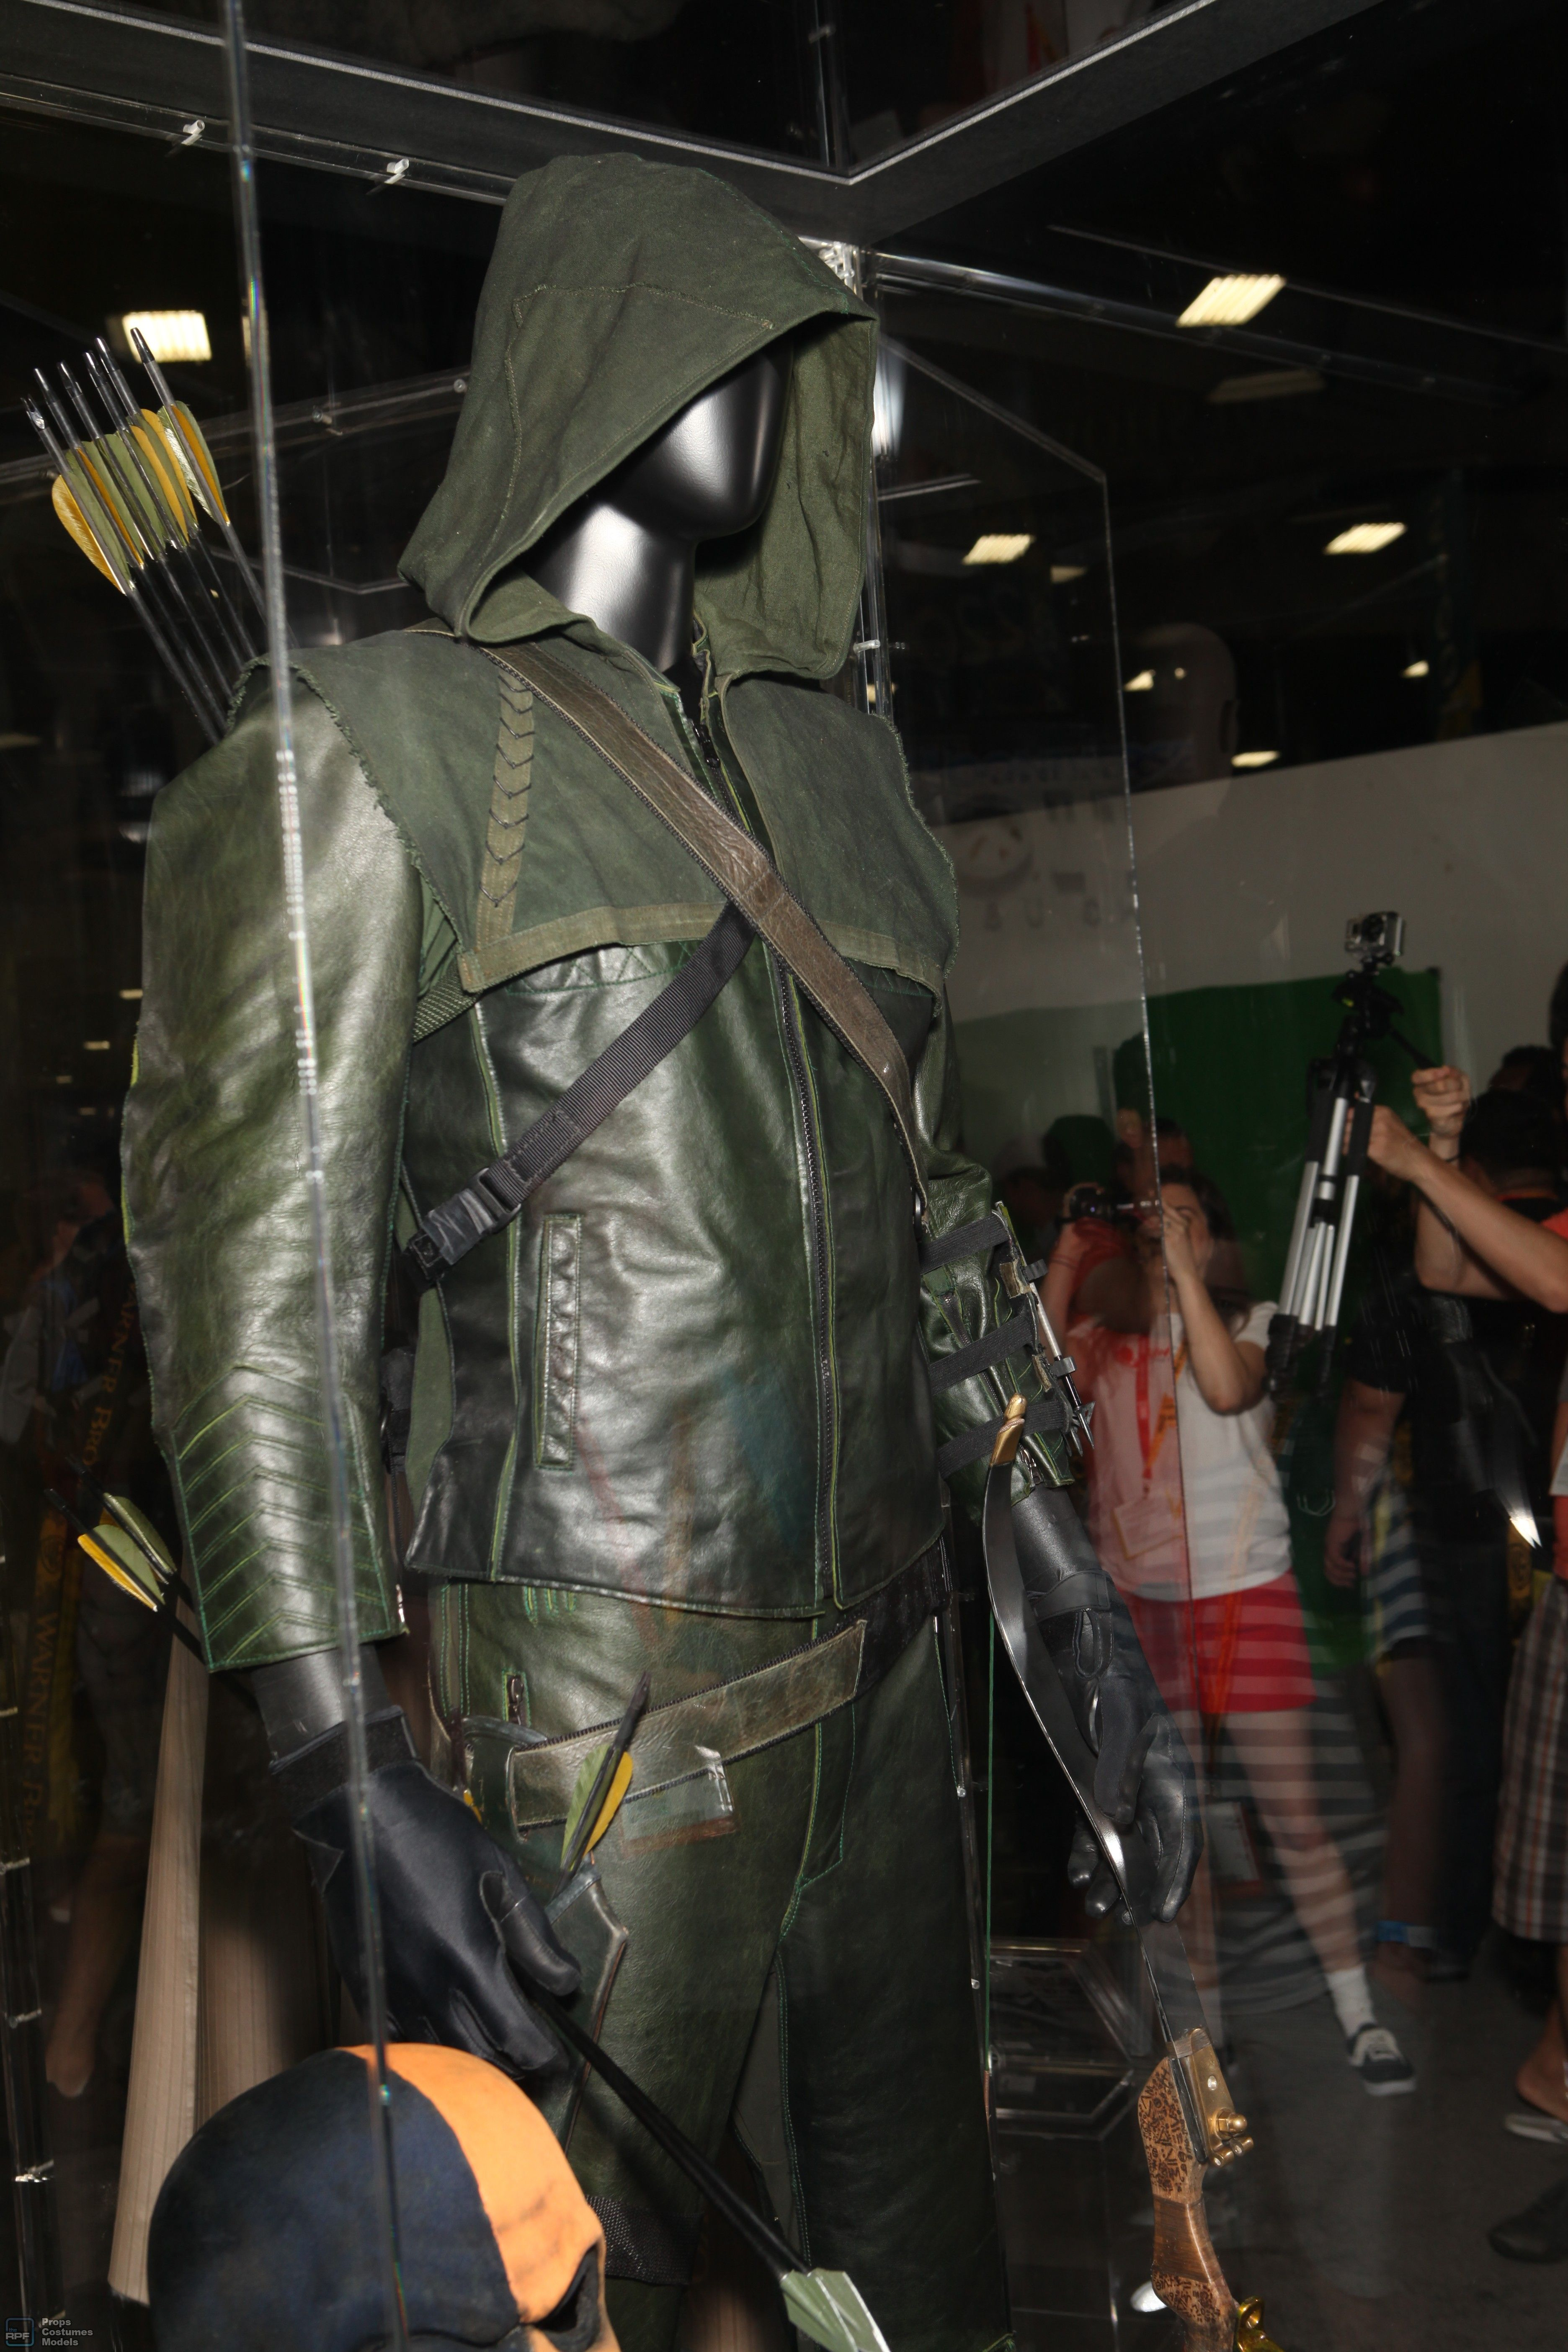 green arrow costume - Google Search | costumes | Green ...